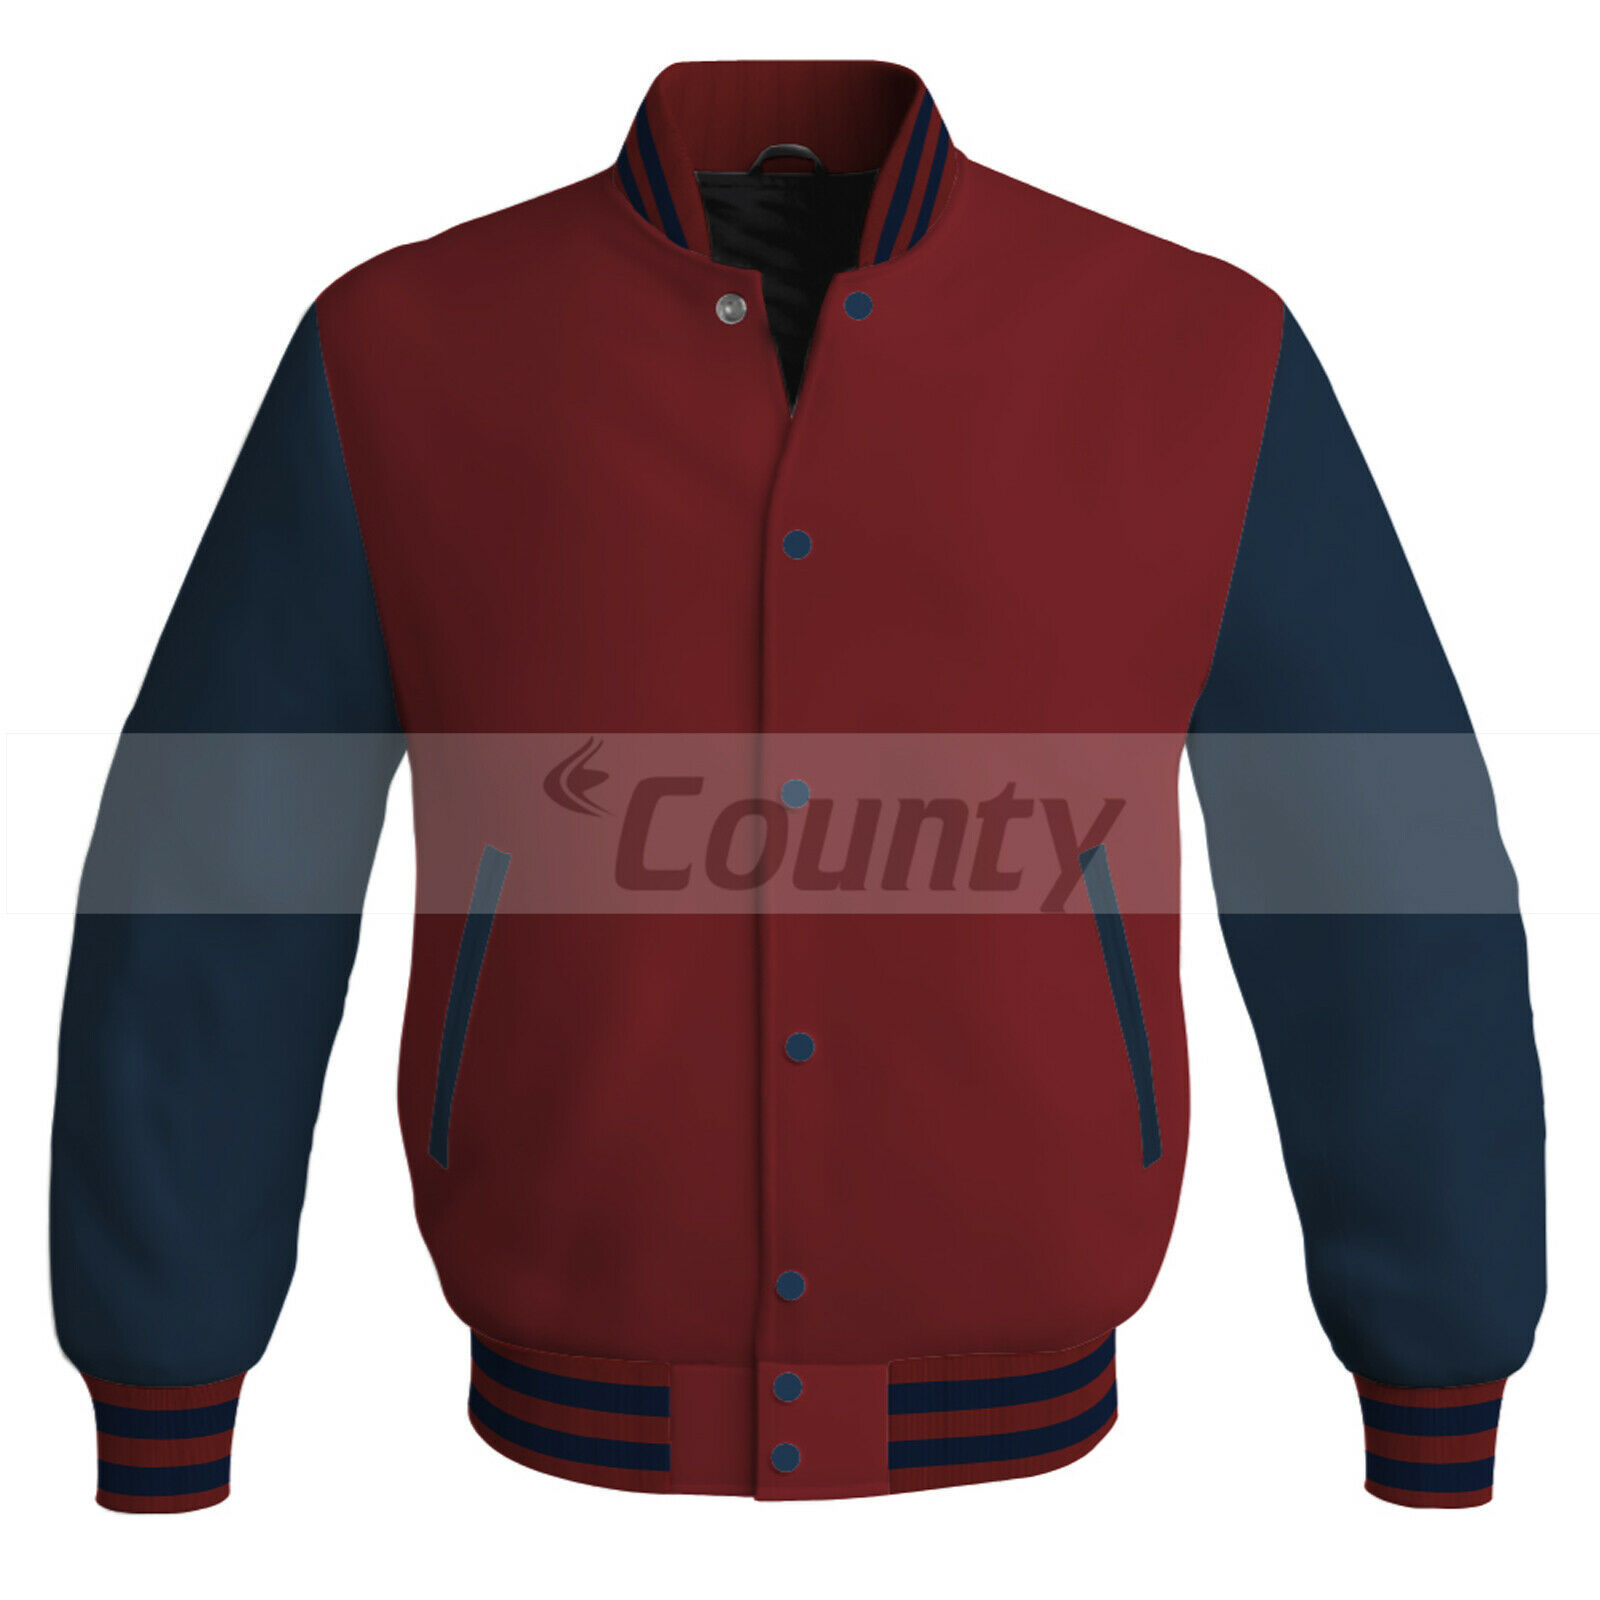 Primary image for Super New Letterman Baseball College Bomber Jacket Sports Maroon Navy Blue Satin